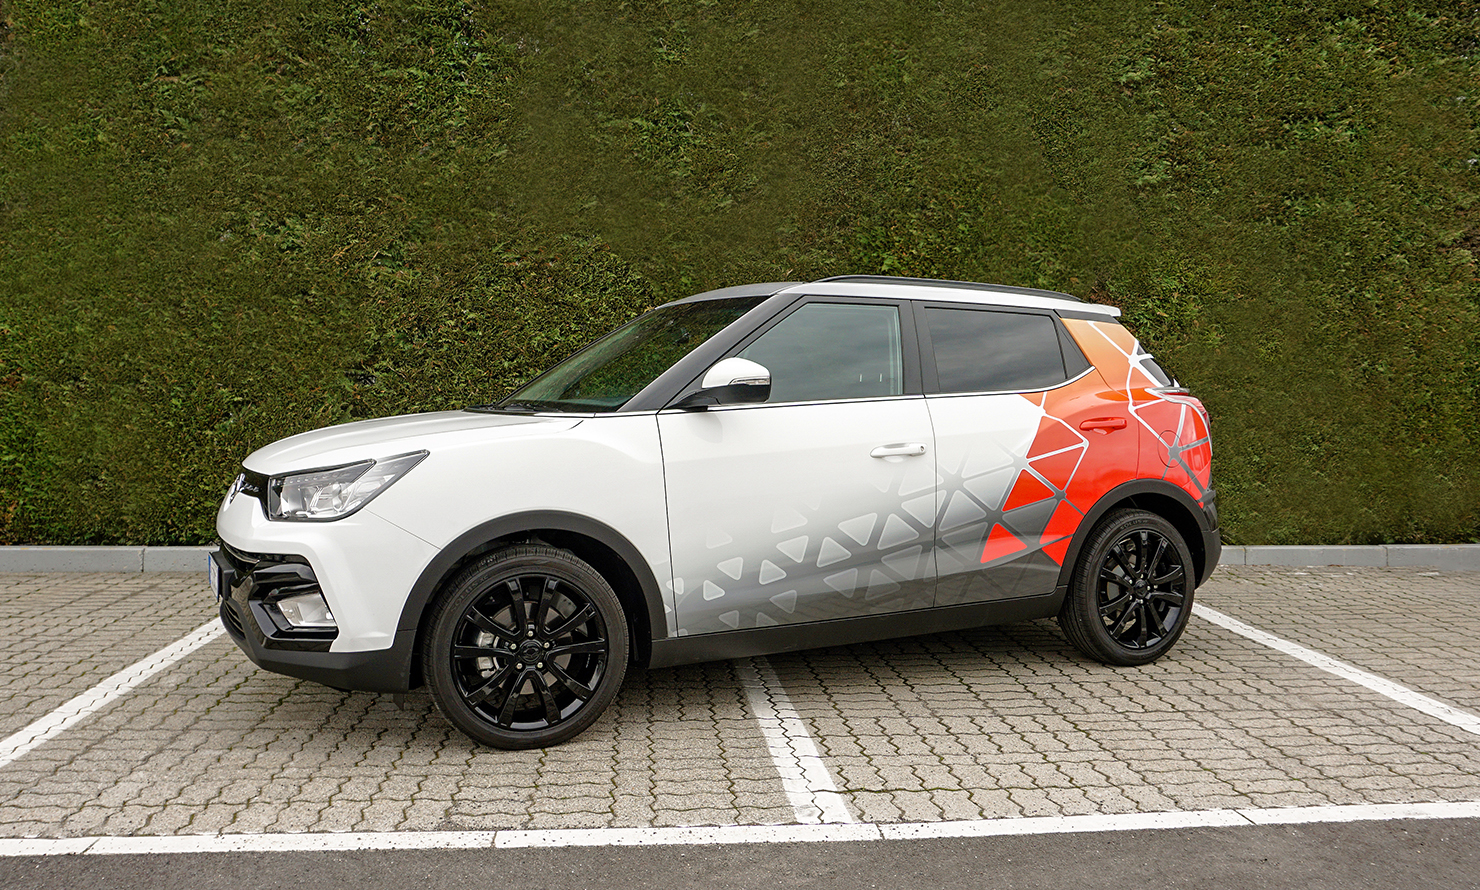 https://kubelibre.com/uploads/Slider-work-tutti-clienti/ssangyong-tivoli-design-take-over-exhibition-mudec-milano-3.jpg